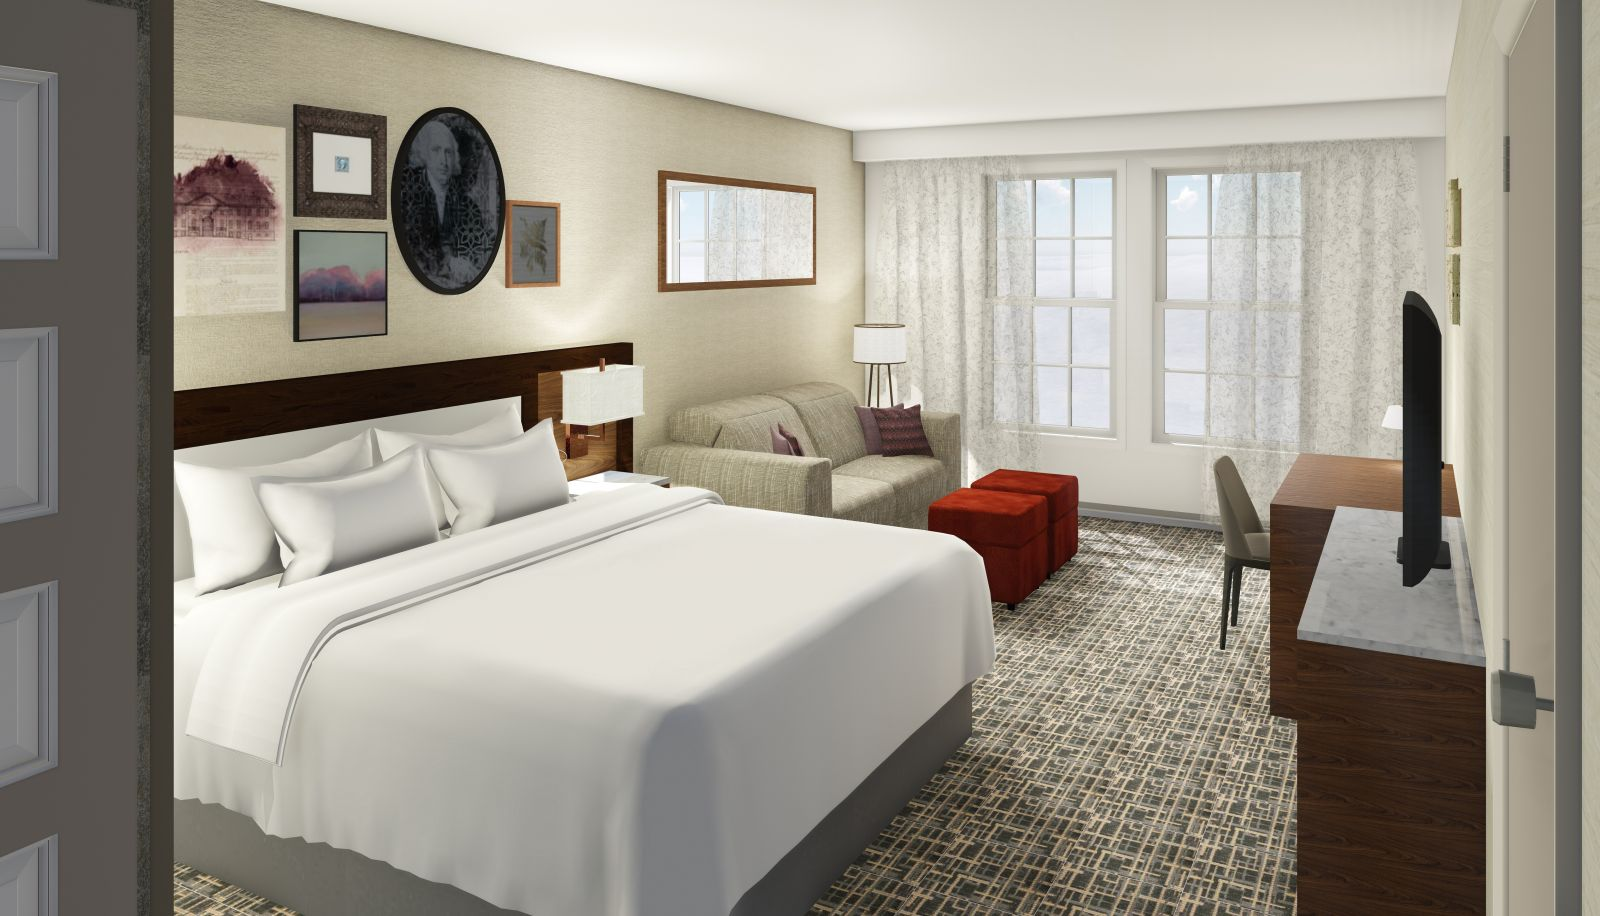 Hotel Madison Hotel Room - King Size Bed With White Sheets Located in Harrisonburg Virginia